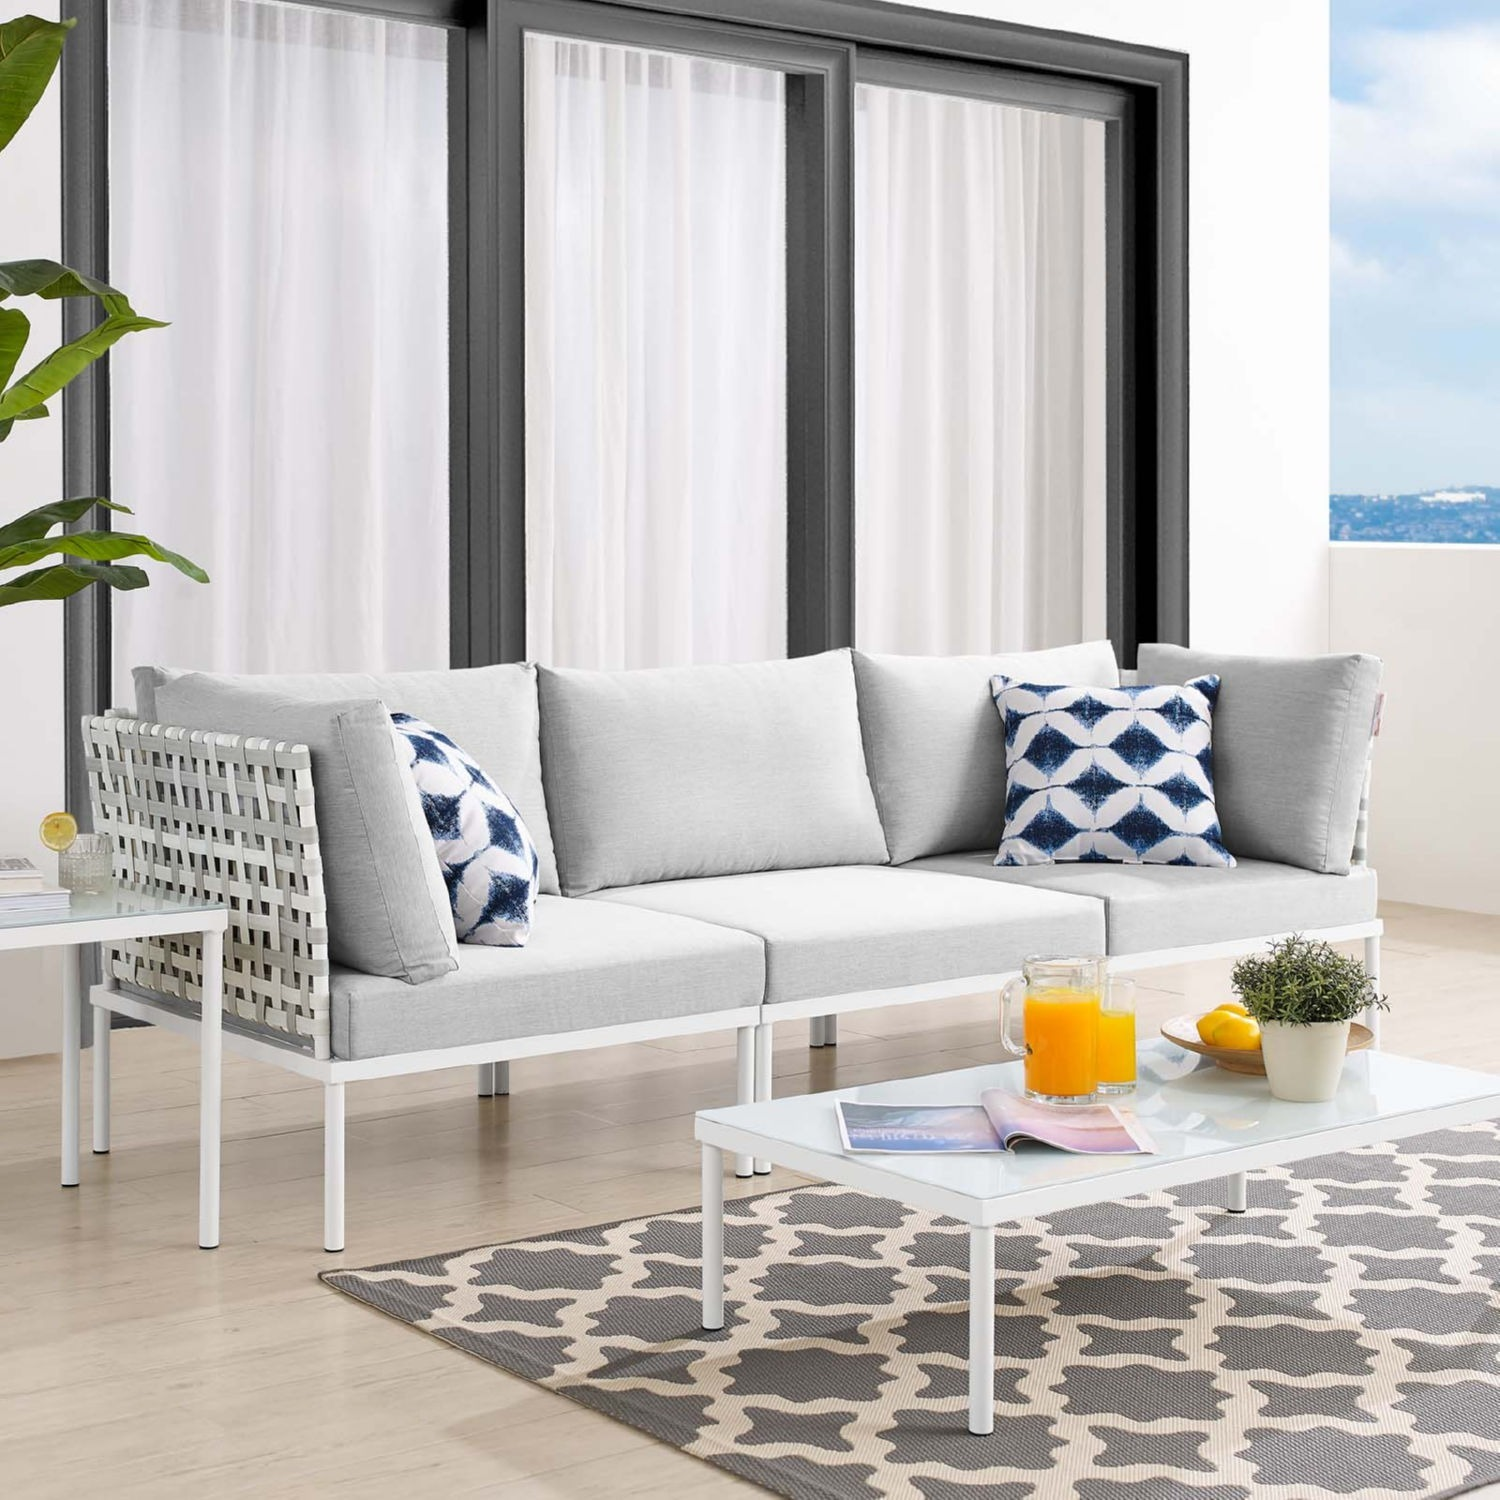 Outdoor Patio Sofa In Taupe Gray Cushion Fabric - image-7